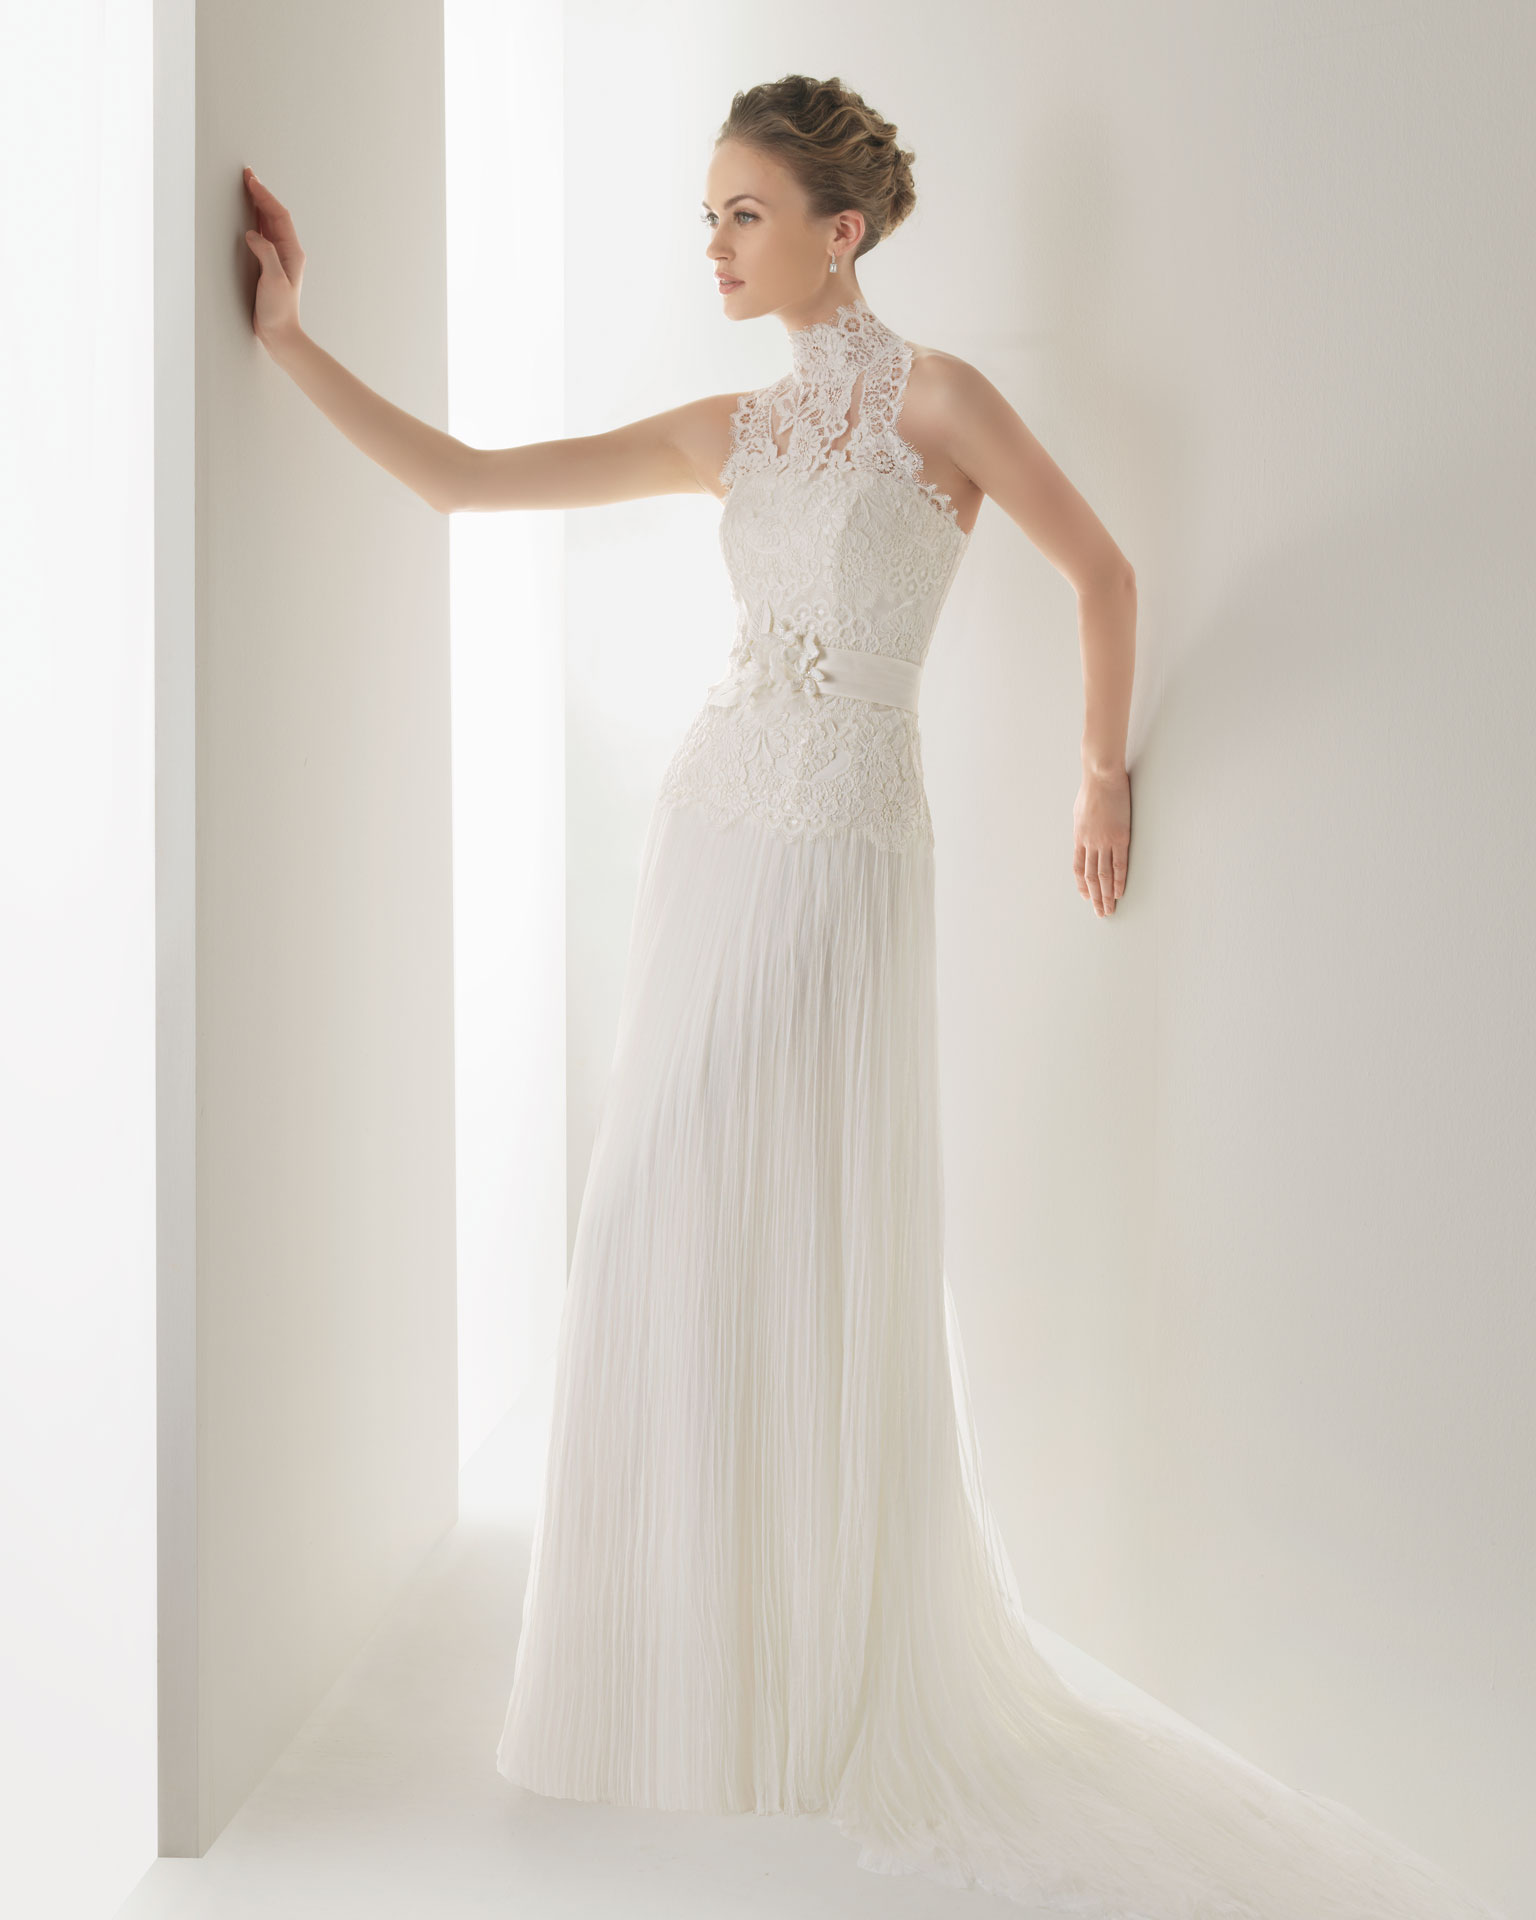 2013-wedding-dress-soft-by-rosa-clara-bridal-gowns-jucar.original